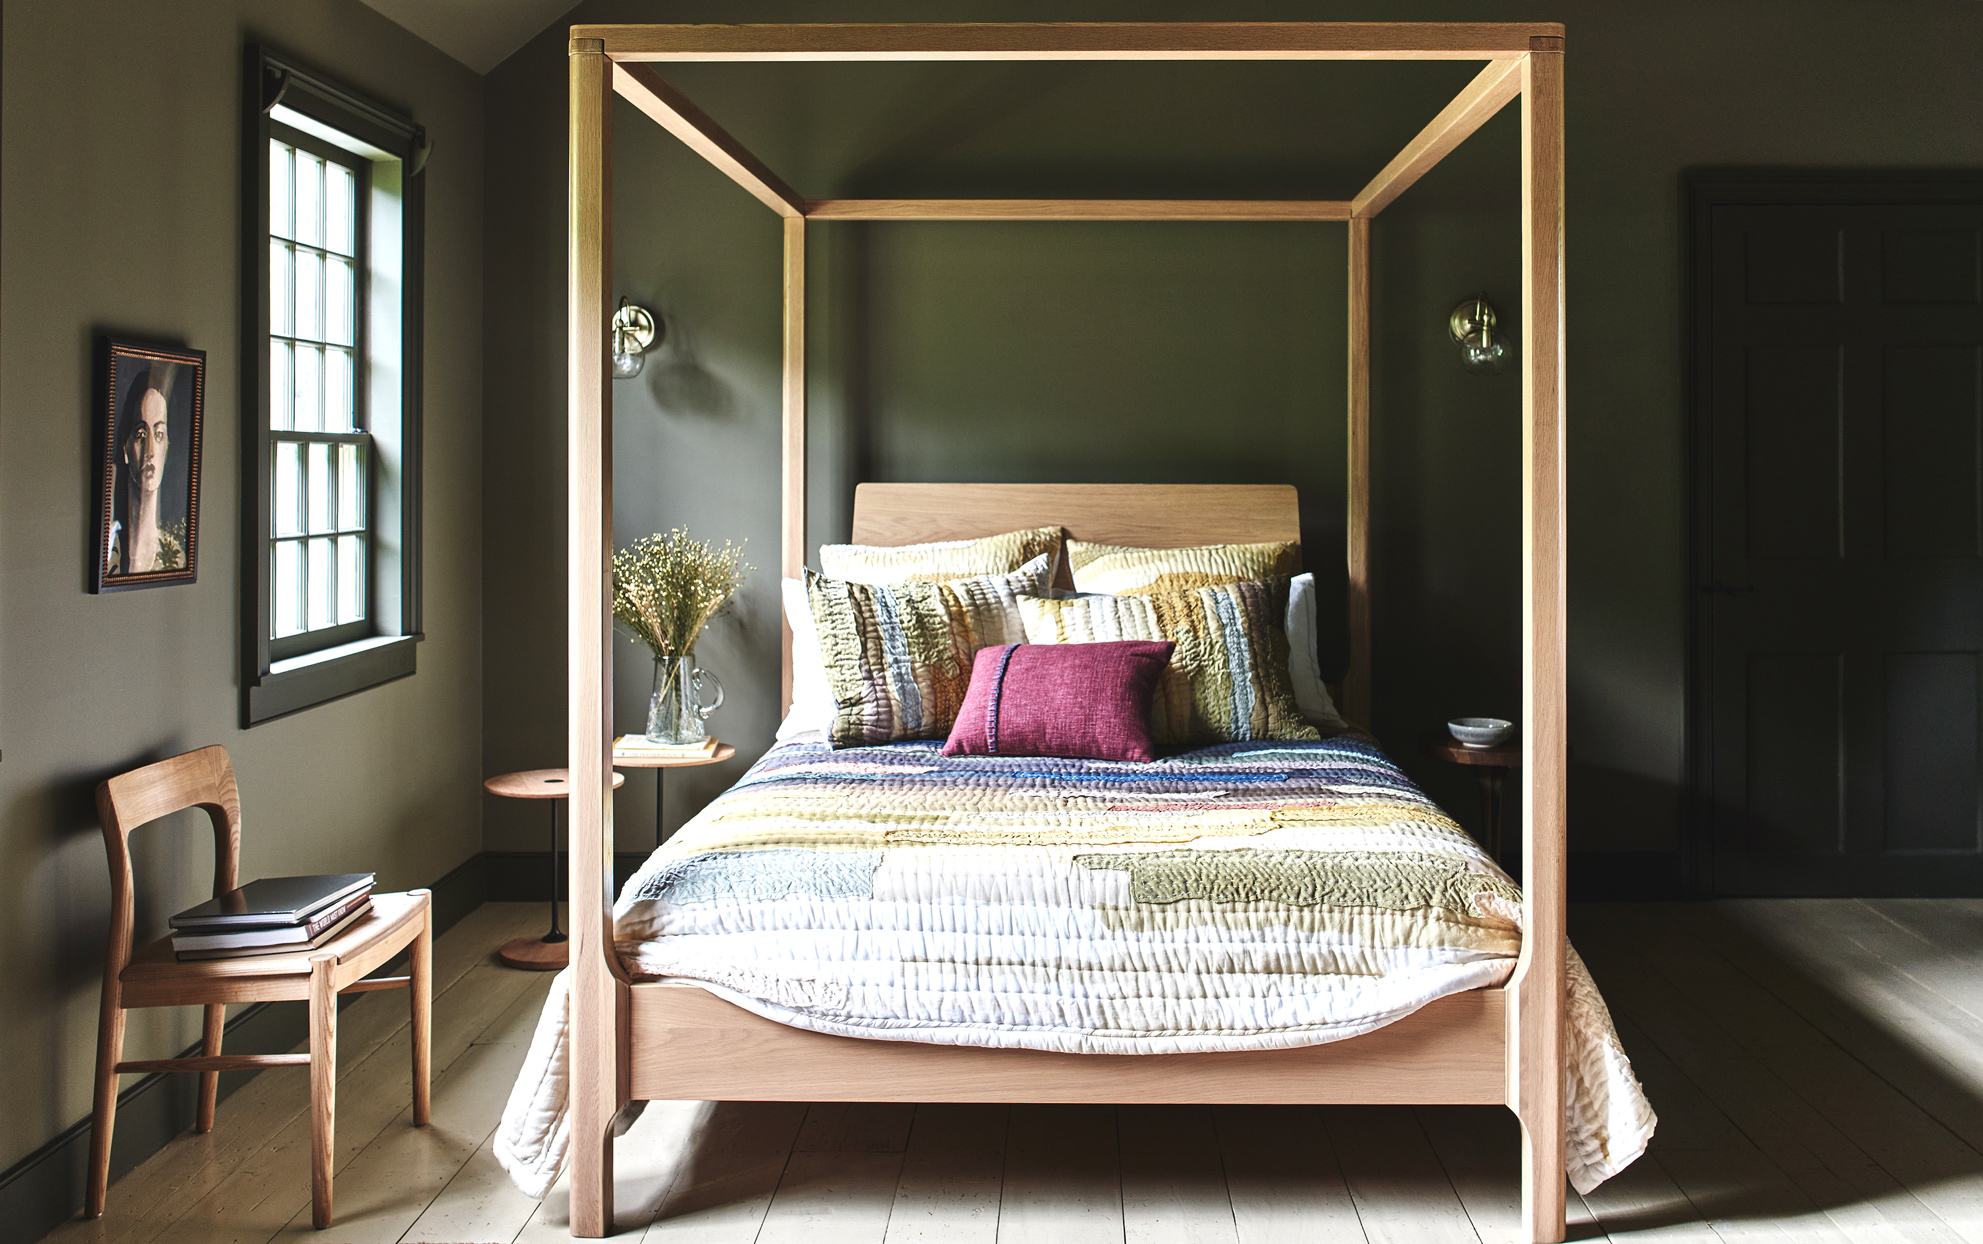 Anthropologie painted green bedroom with a four poster bed